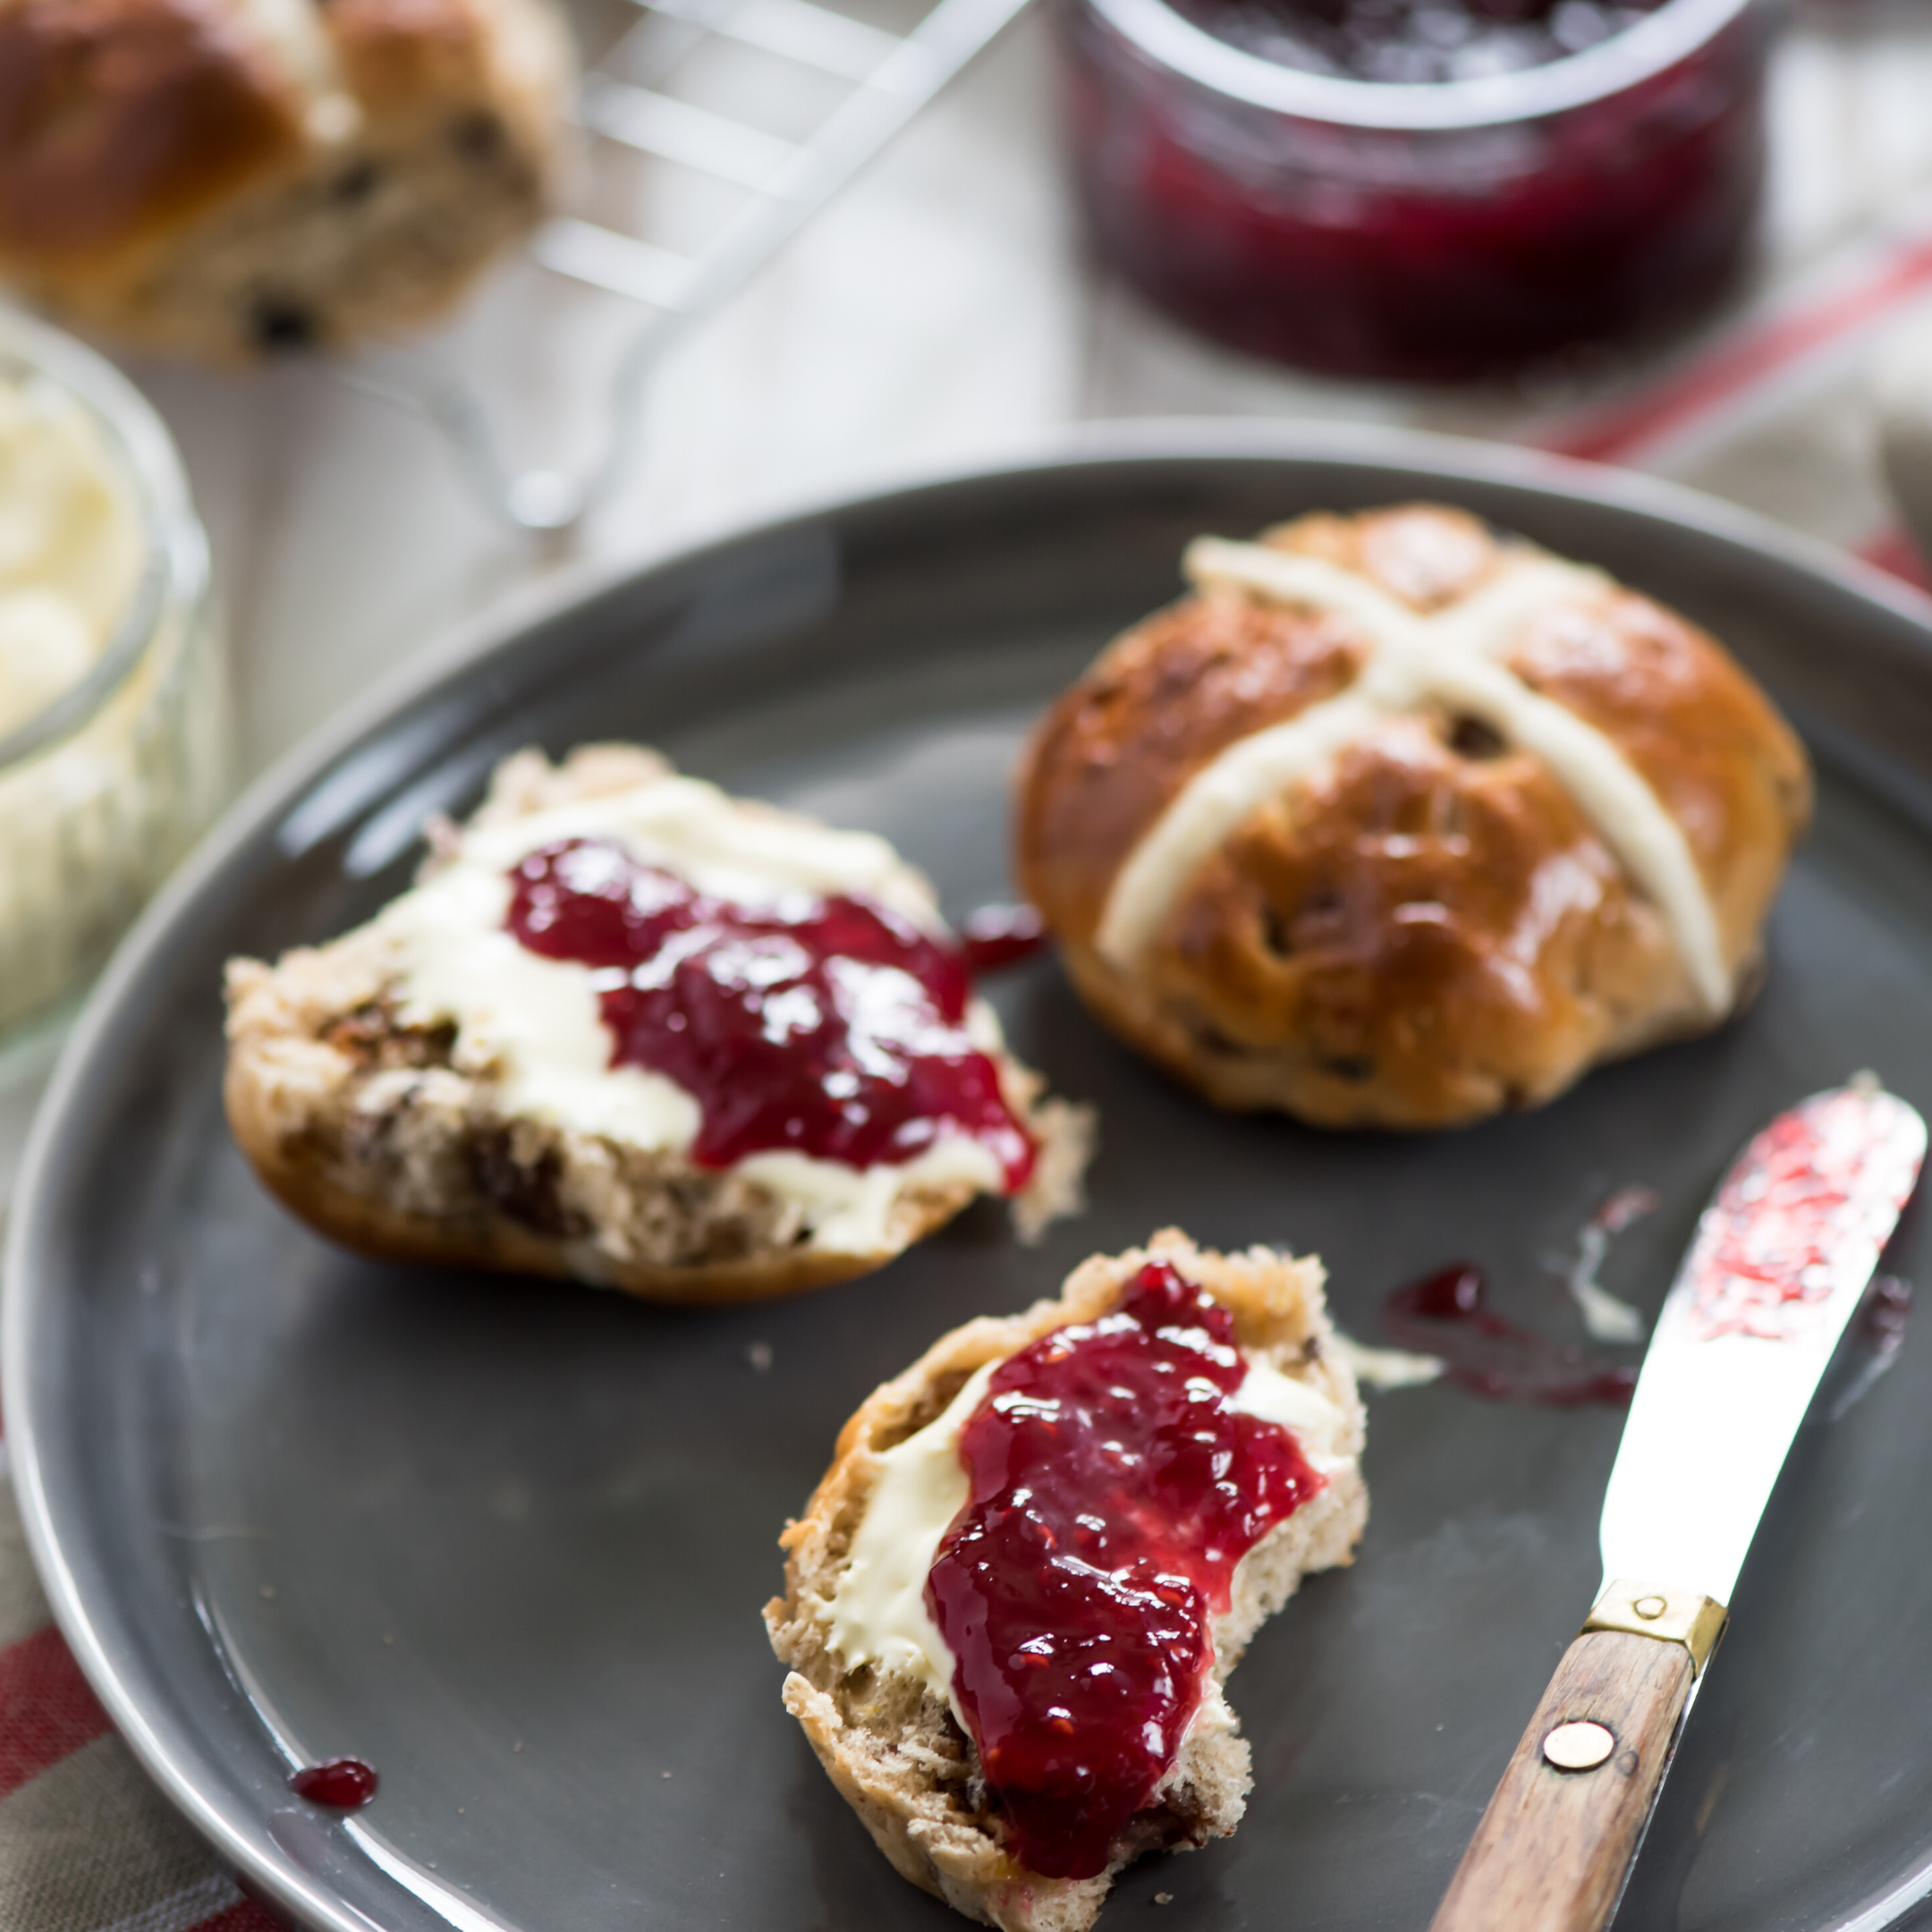 Hot cross buns aux raisins secs